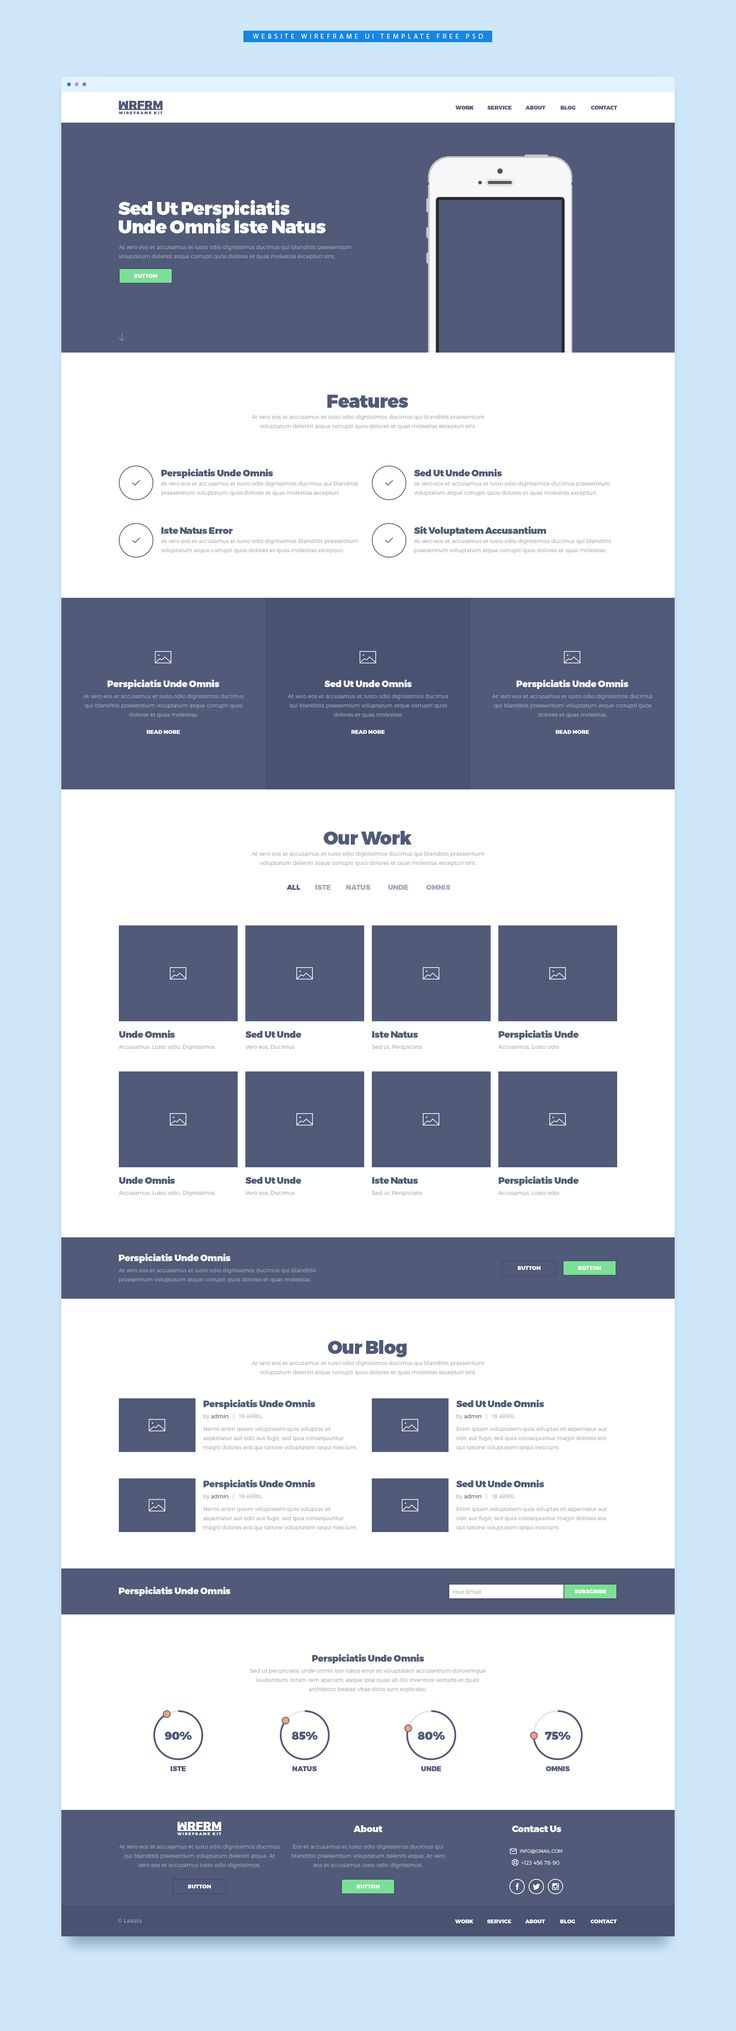 <p>Download Website Wireframe UI Template Free PSD. A wireframe UI kit which will help you create high quality website wireframe and will help you speed your work giving you more time to work on the final website design. The pack contains lots of components, each pixel perfect, with organised folder and layers making it easier to do changes. Website Wireframe UI Template Free PSD can help you create a full one page website. Hope you like it. Enjoy!</p>